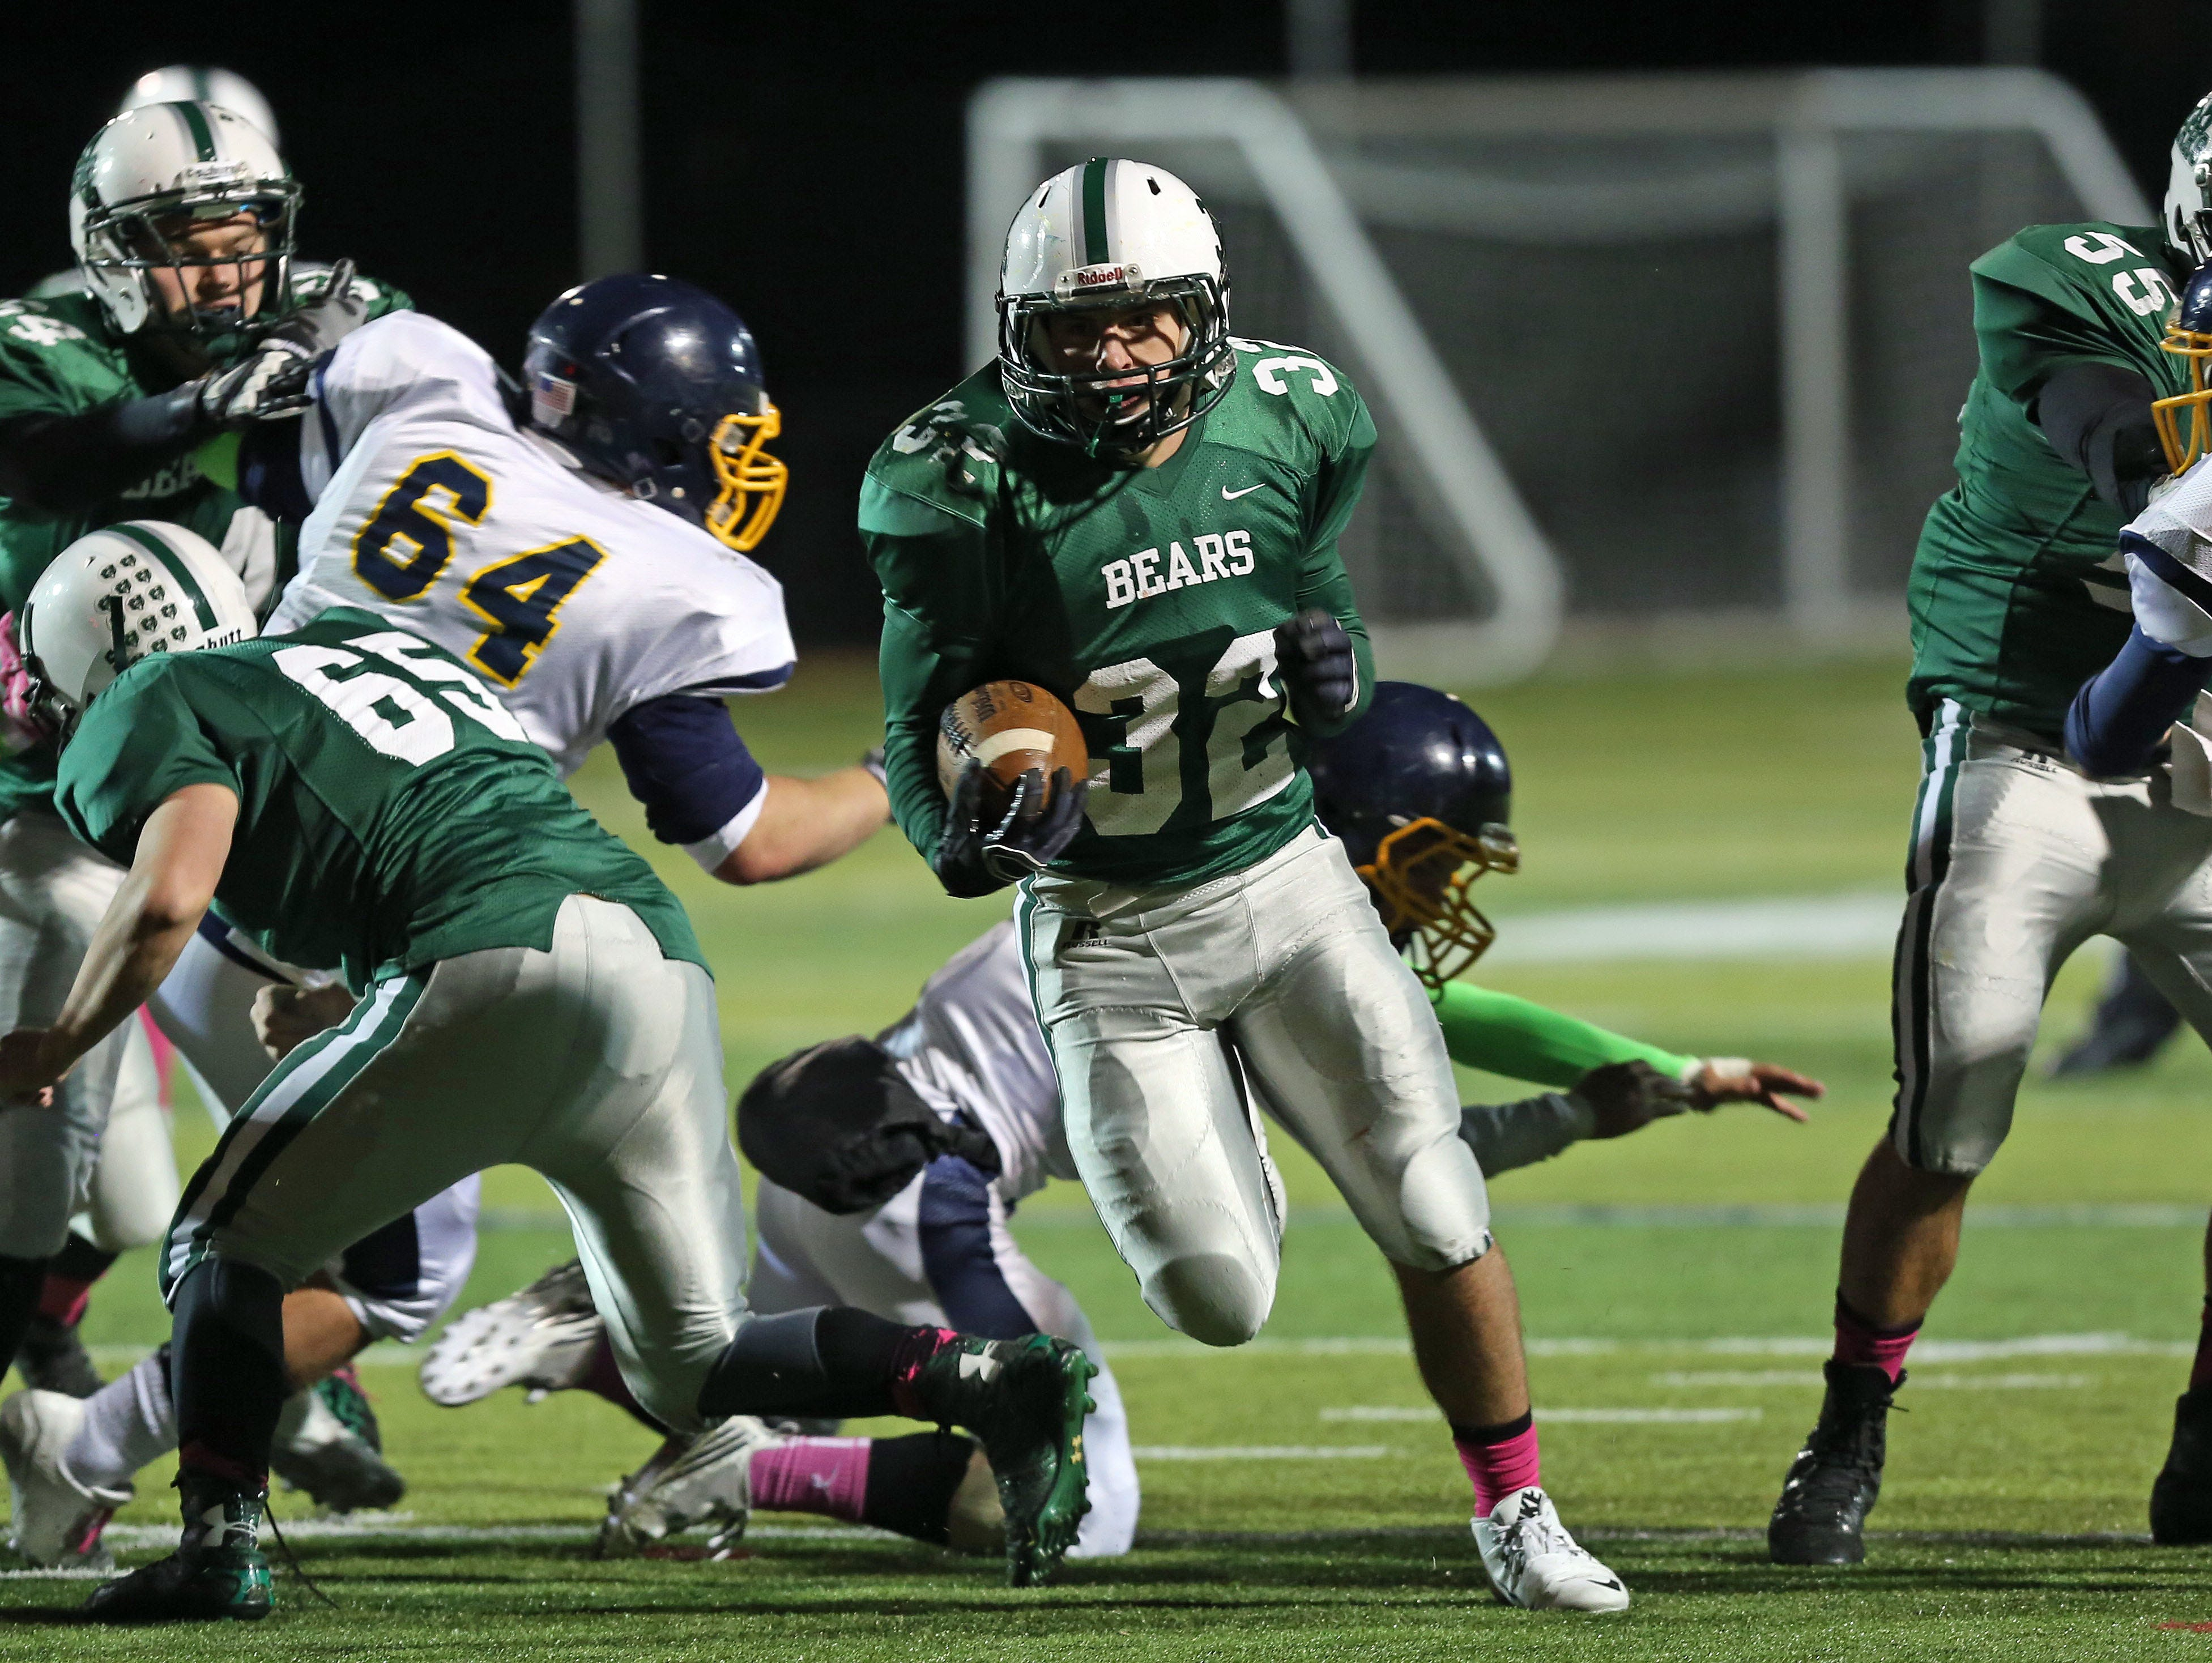 Brewster's Jeremy Meissner (32) breaks a tackle as he runs for a first half touchdown against Panas during football action at Brewster High School Oct. 17, 2015.